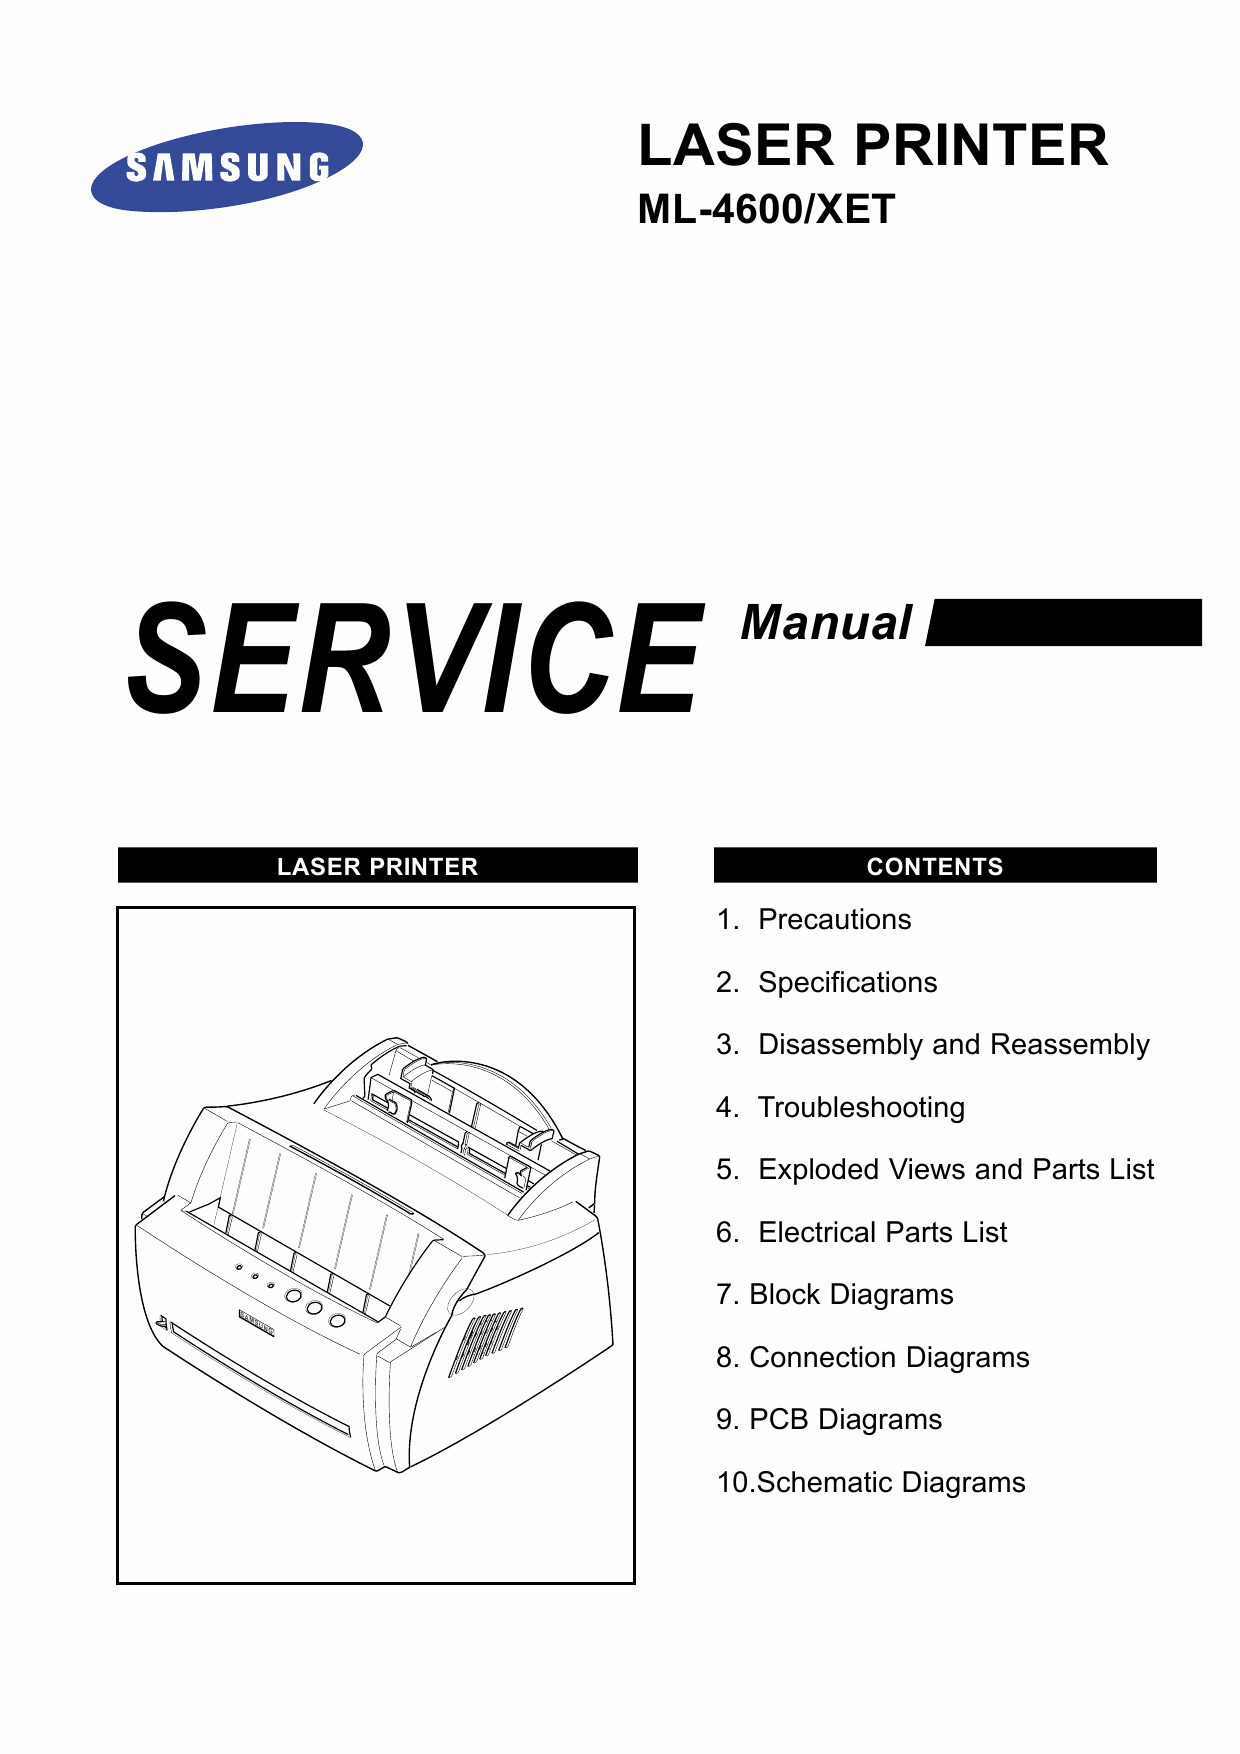 Samsung Laser-Printer ML-4600 Parts and Service Manual-1